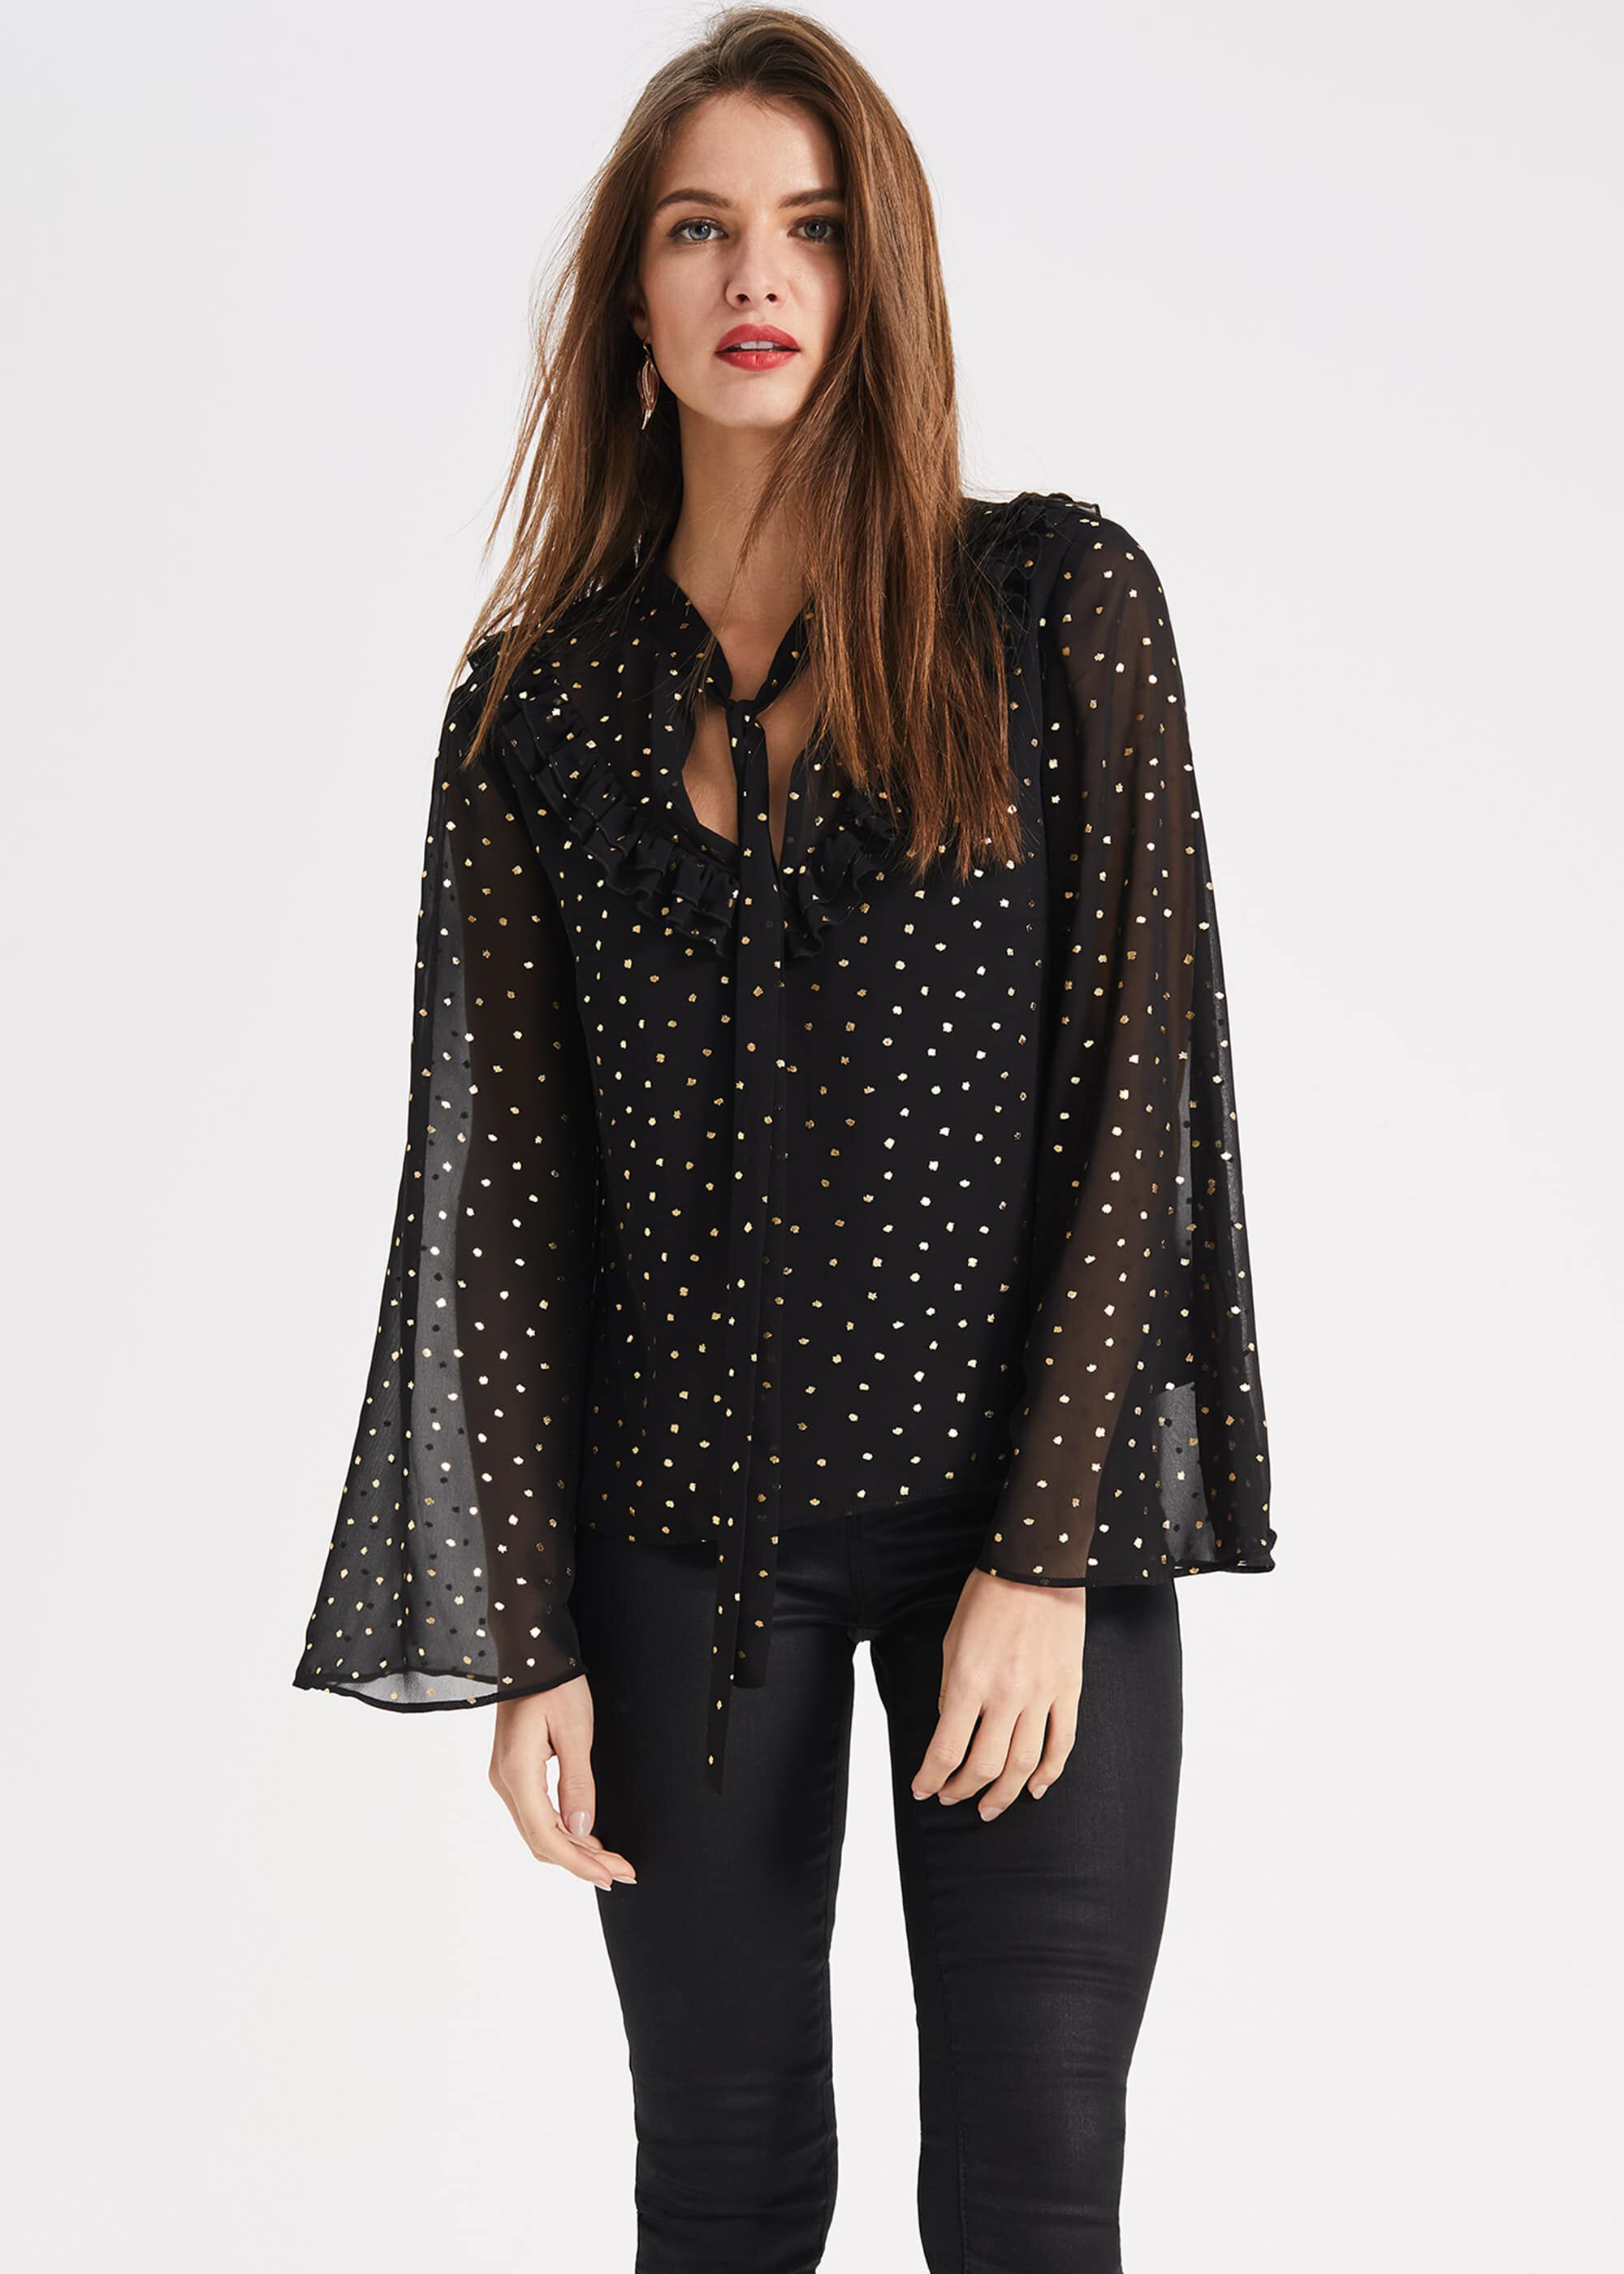 Phase Eight Pertunia Printed Blouse, Black, Blouse